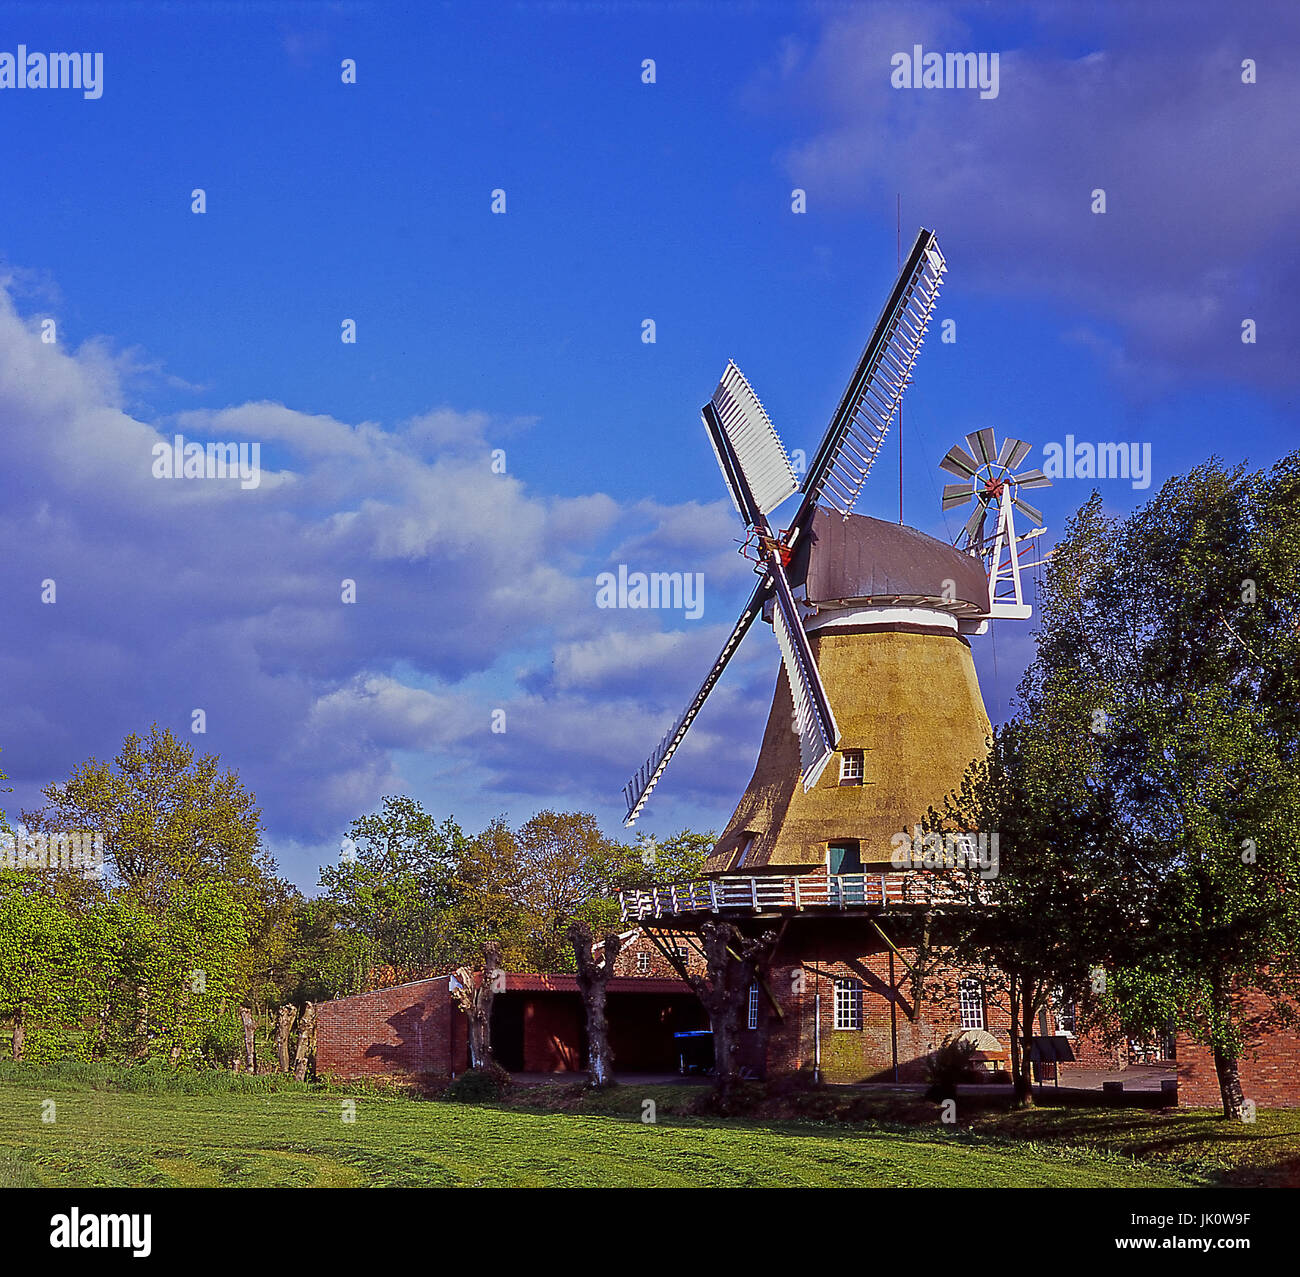 old windmill in bright of the late postmidday sun with departing shower cloudiness. old windmill in late afternoon - Stock Image